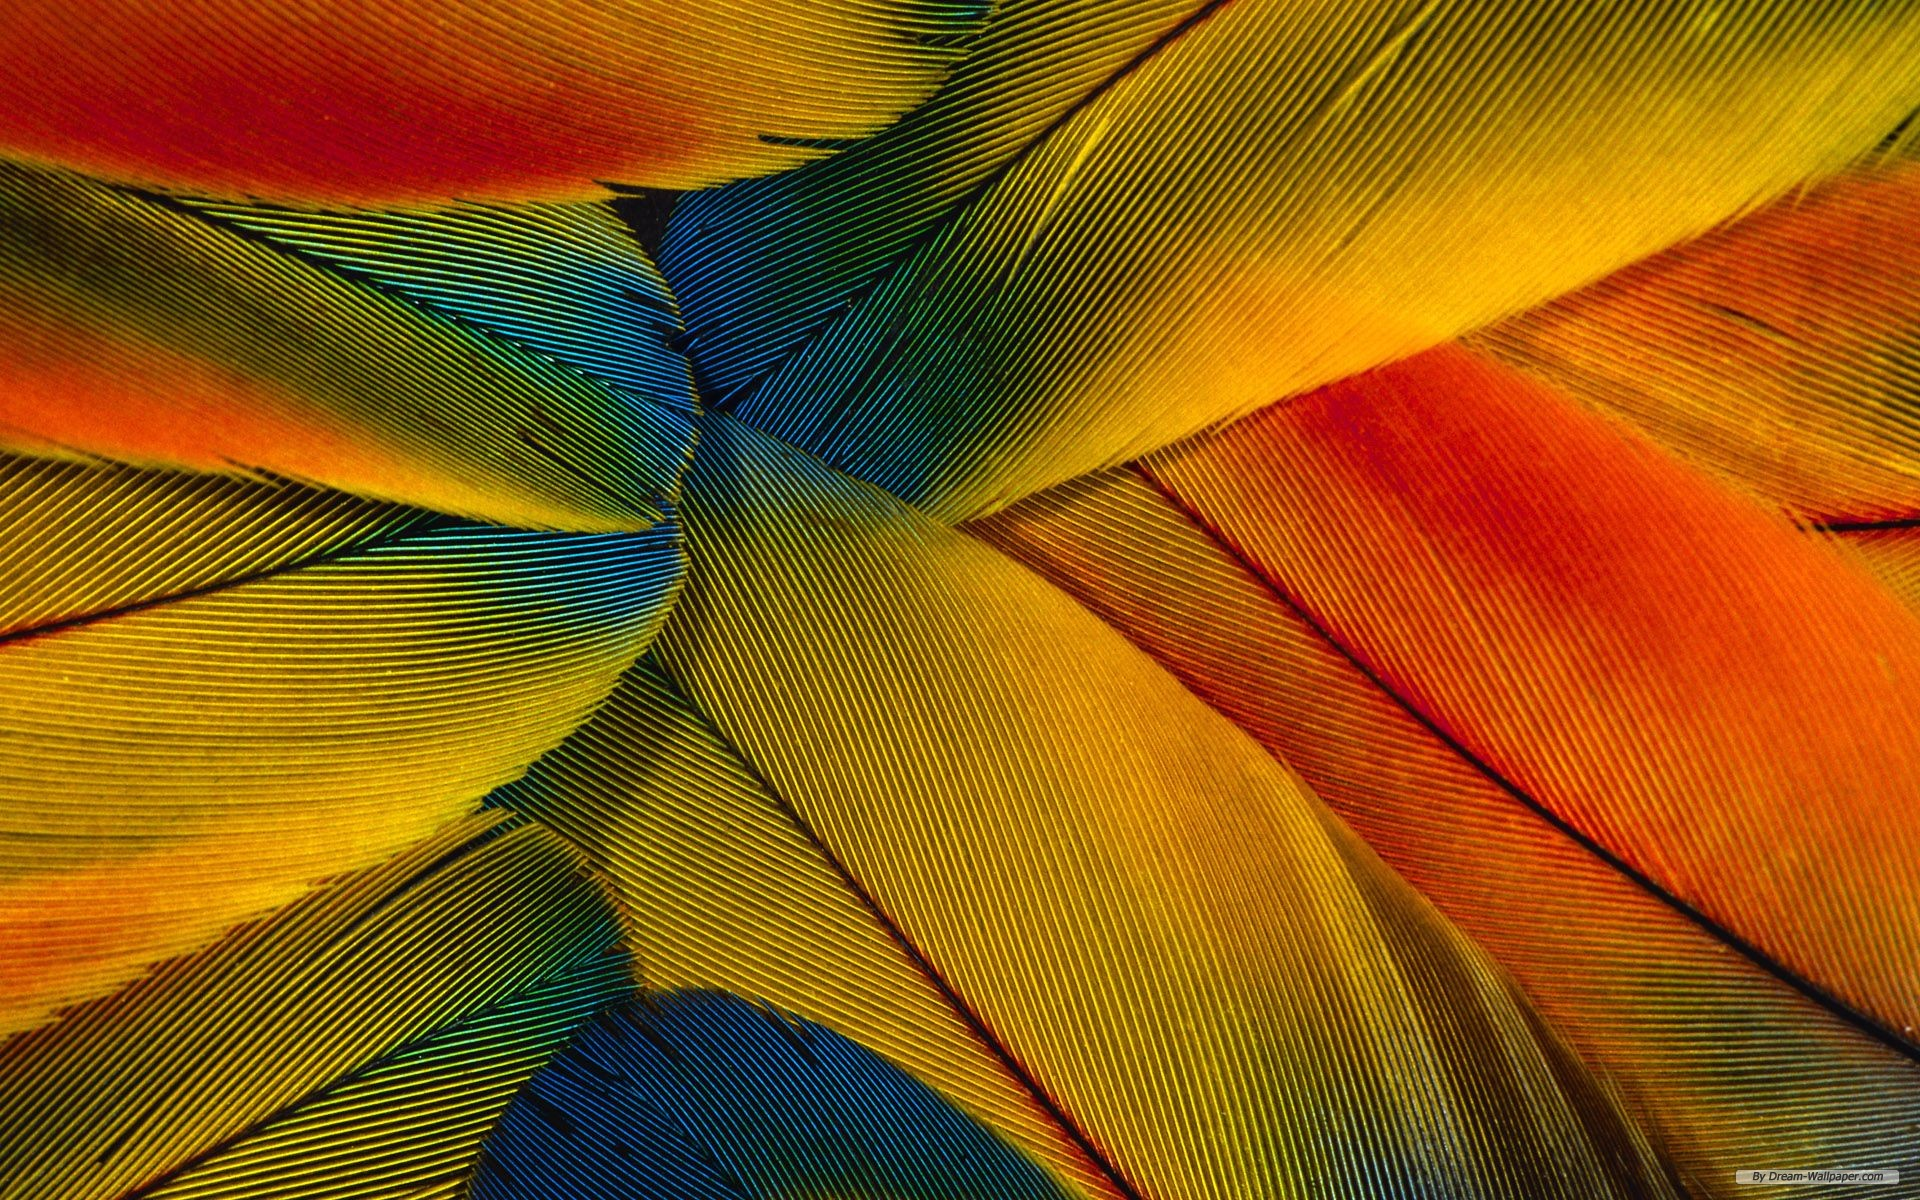 Close Up Feather wallpaper   369812 1920x1200